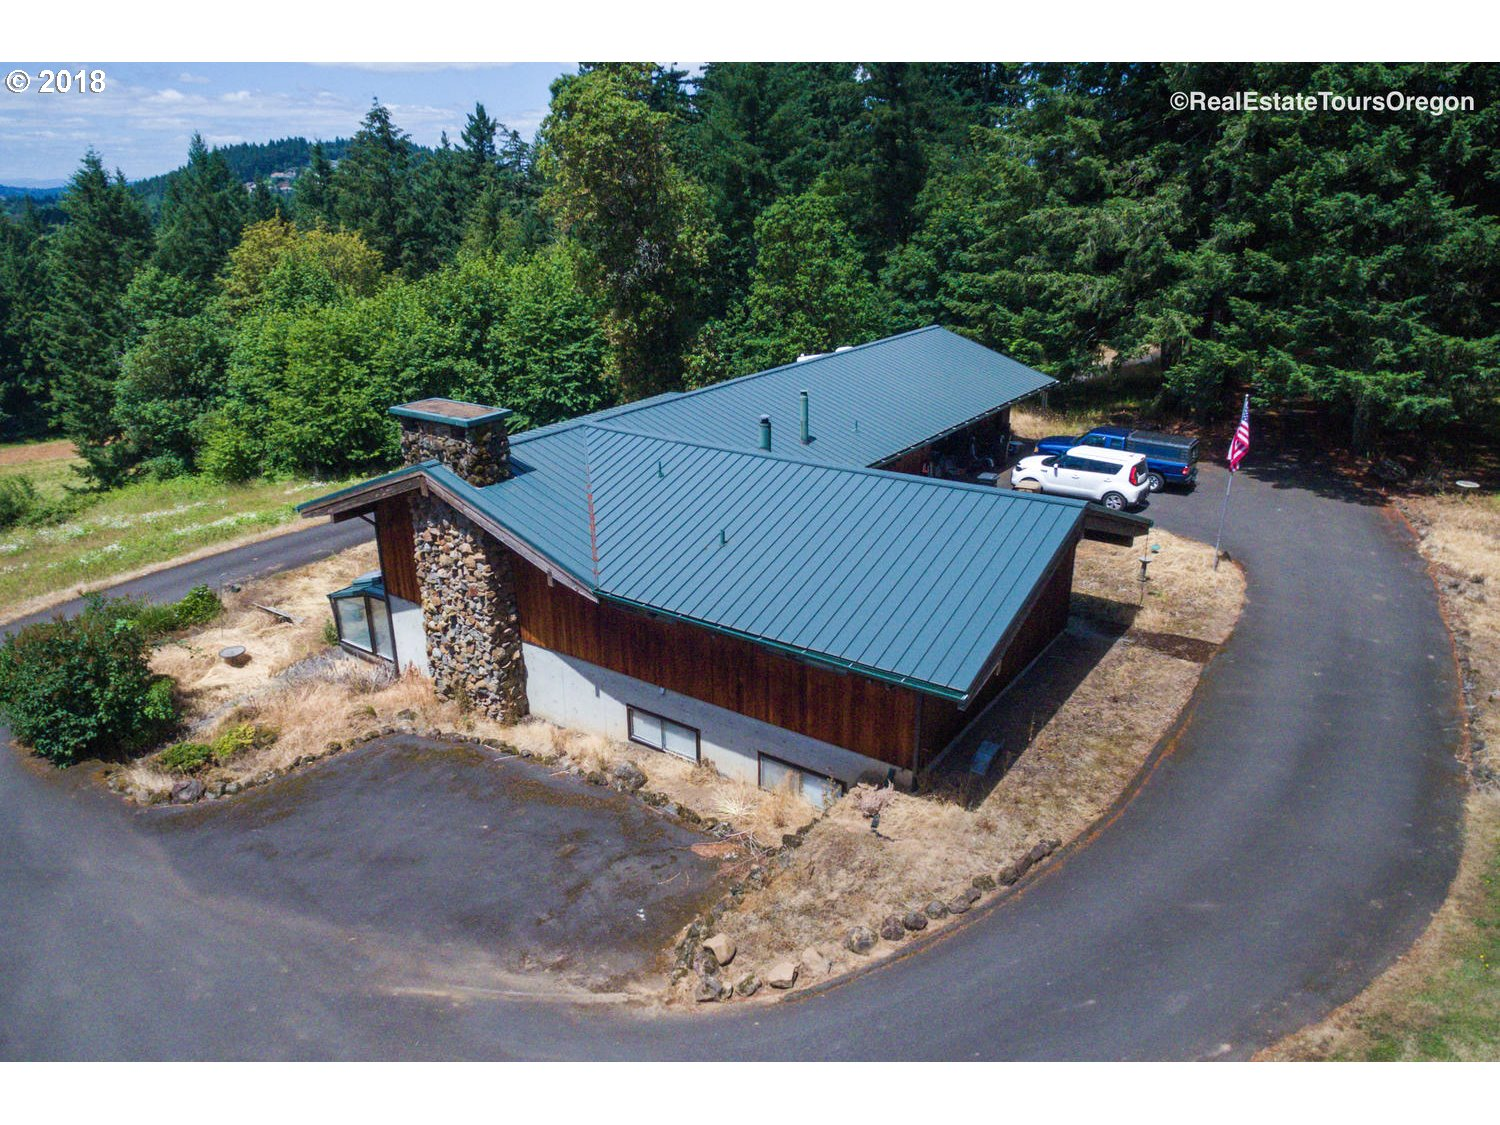 Excellent opportunity in highly desirable Stafford Hamlet. Large Shop and equipment barn. Good bones in this magnificent old NW Contemporary design.  Seller is a trust and will do no repairs. Seller will contribute $20,000 to installation of new septic.